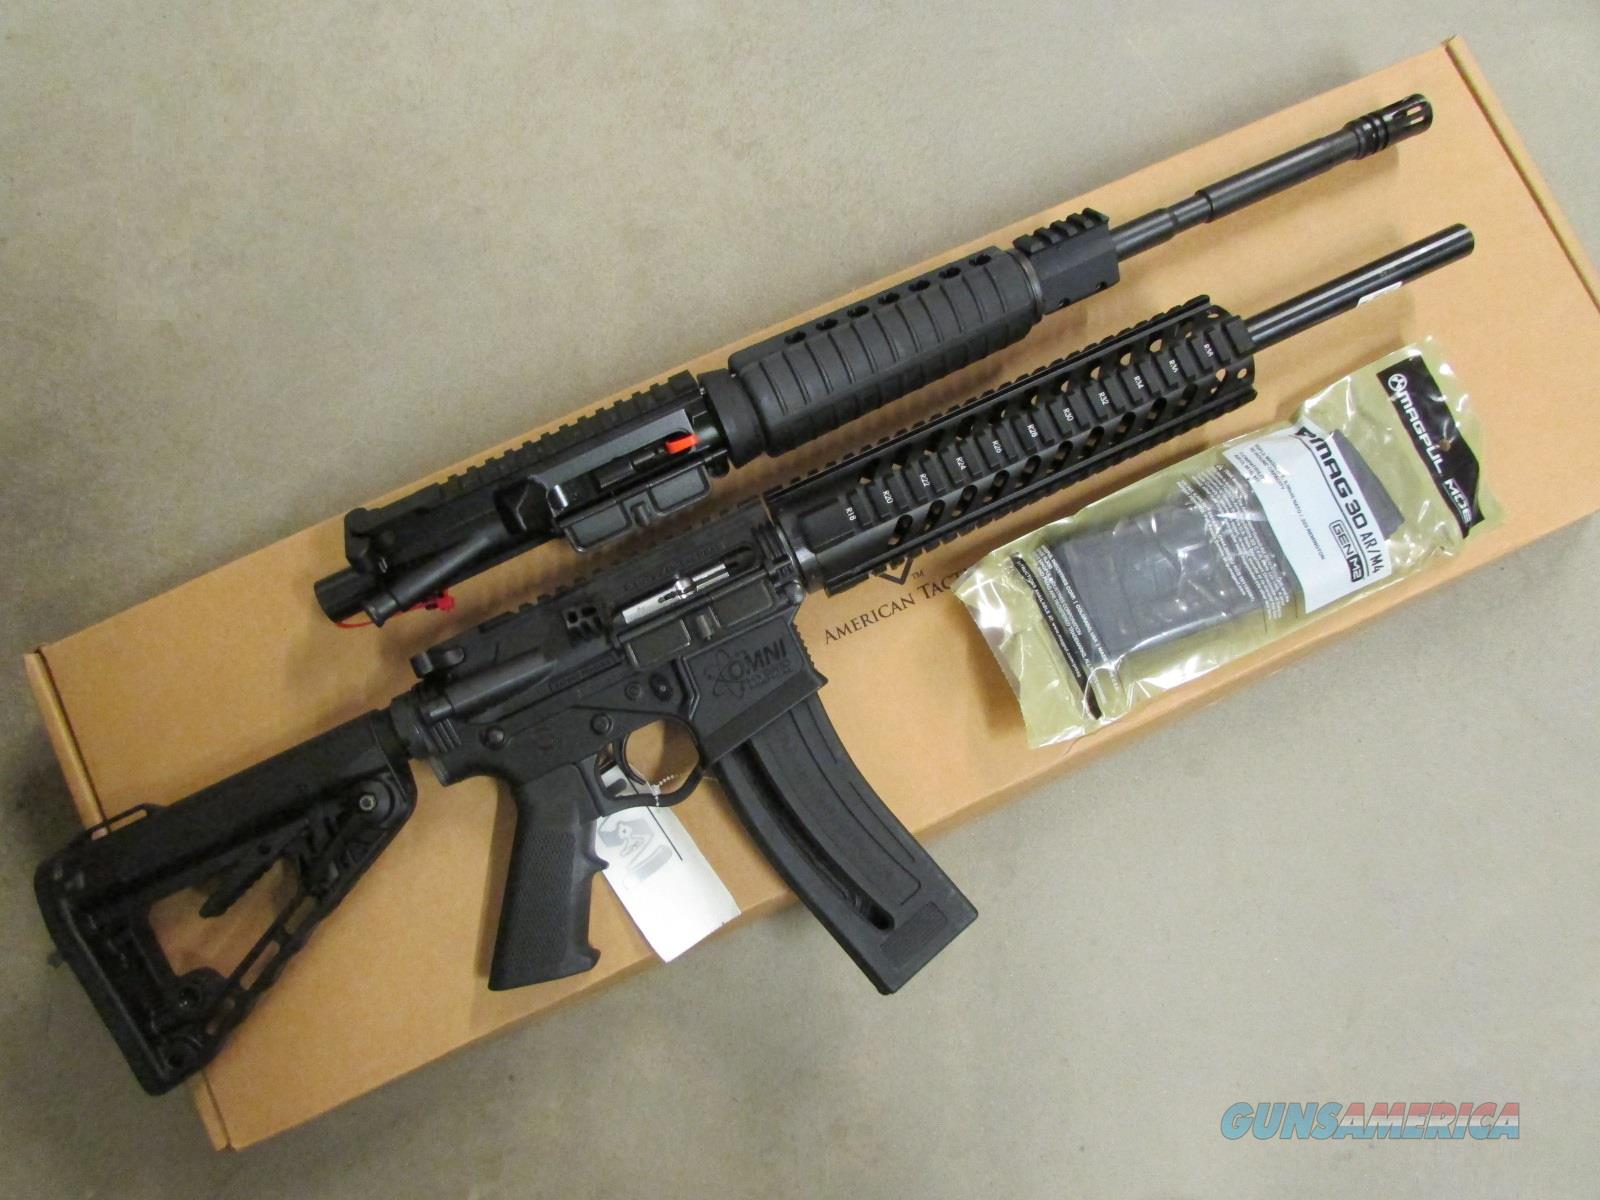 ati omni hybrid combo ar 15 22 lr with complet for sale